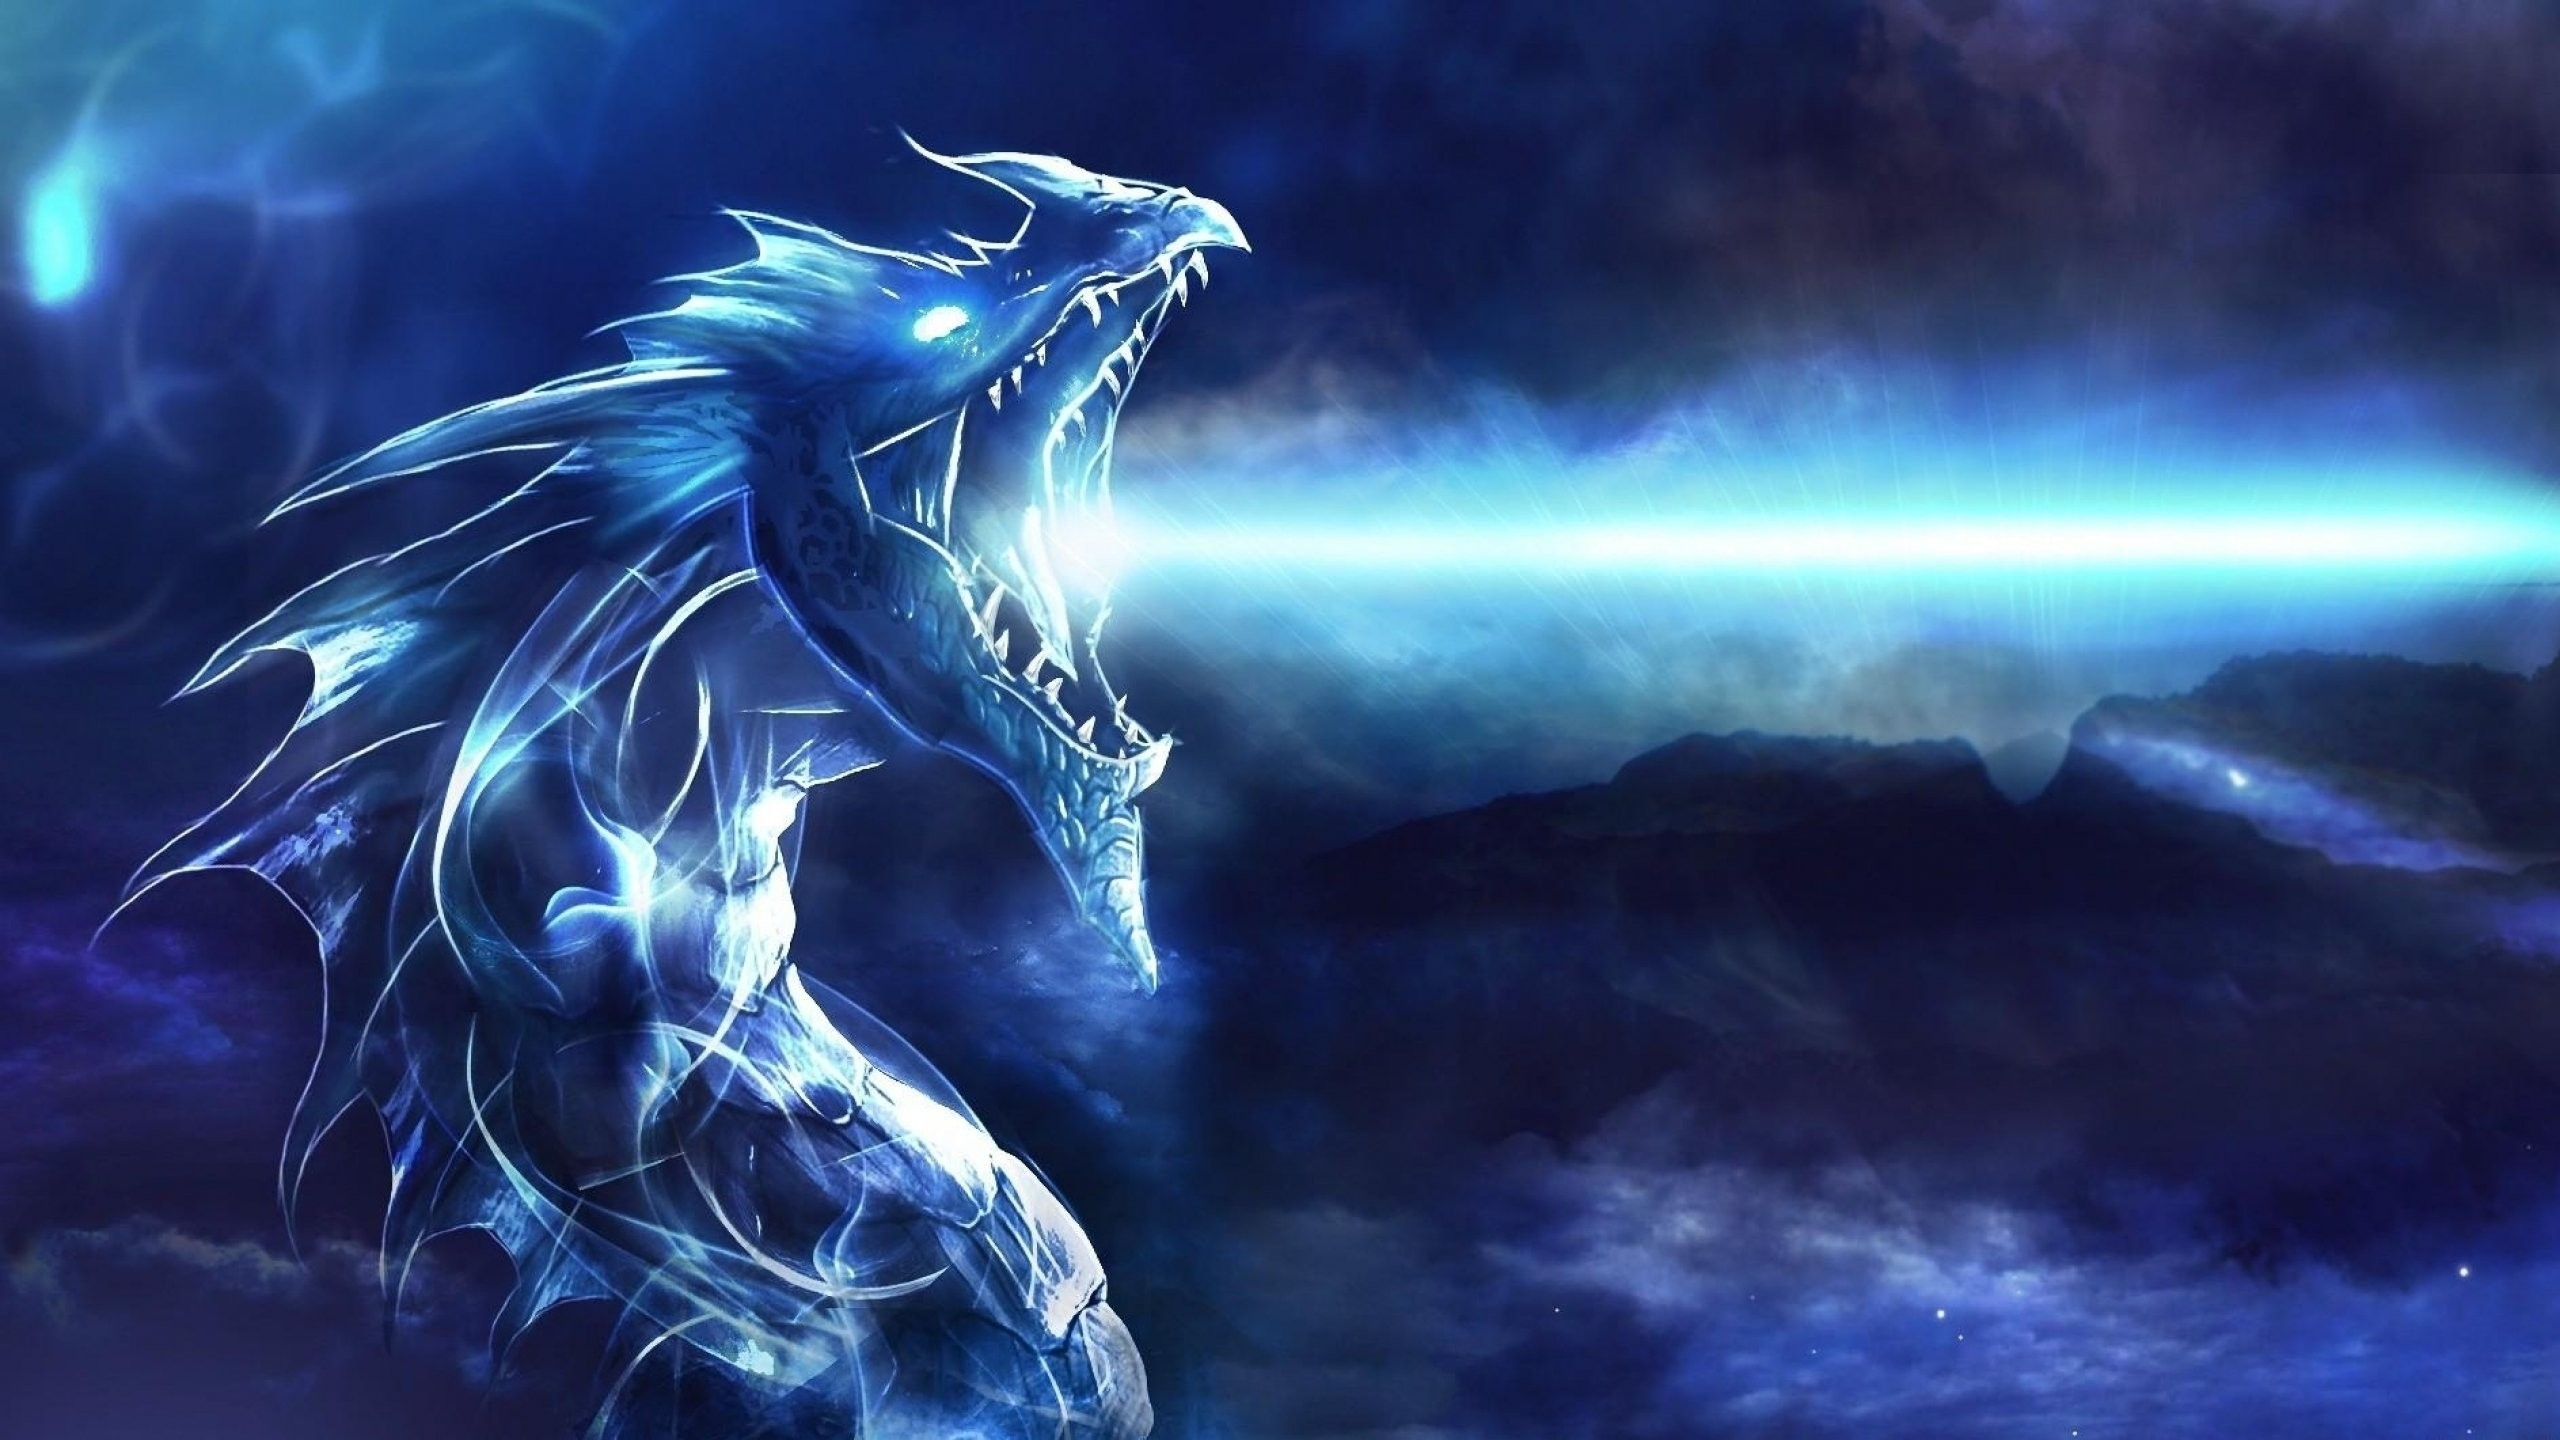 2560x1440 Ice Dragon HD Background Wallpaper 37954